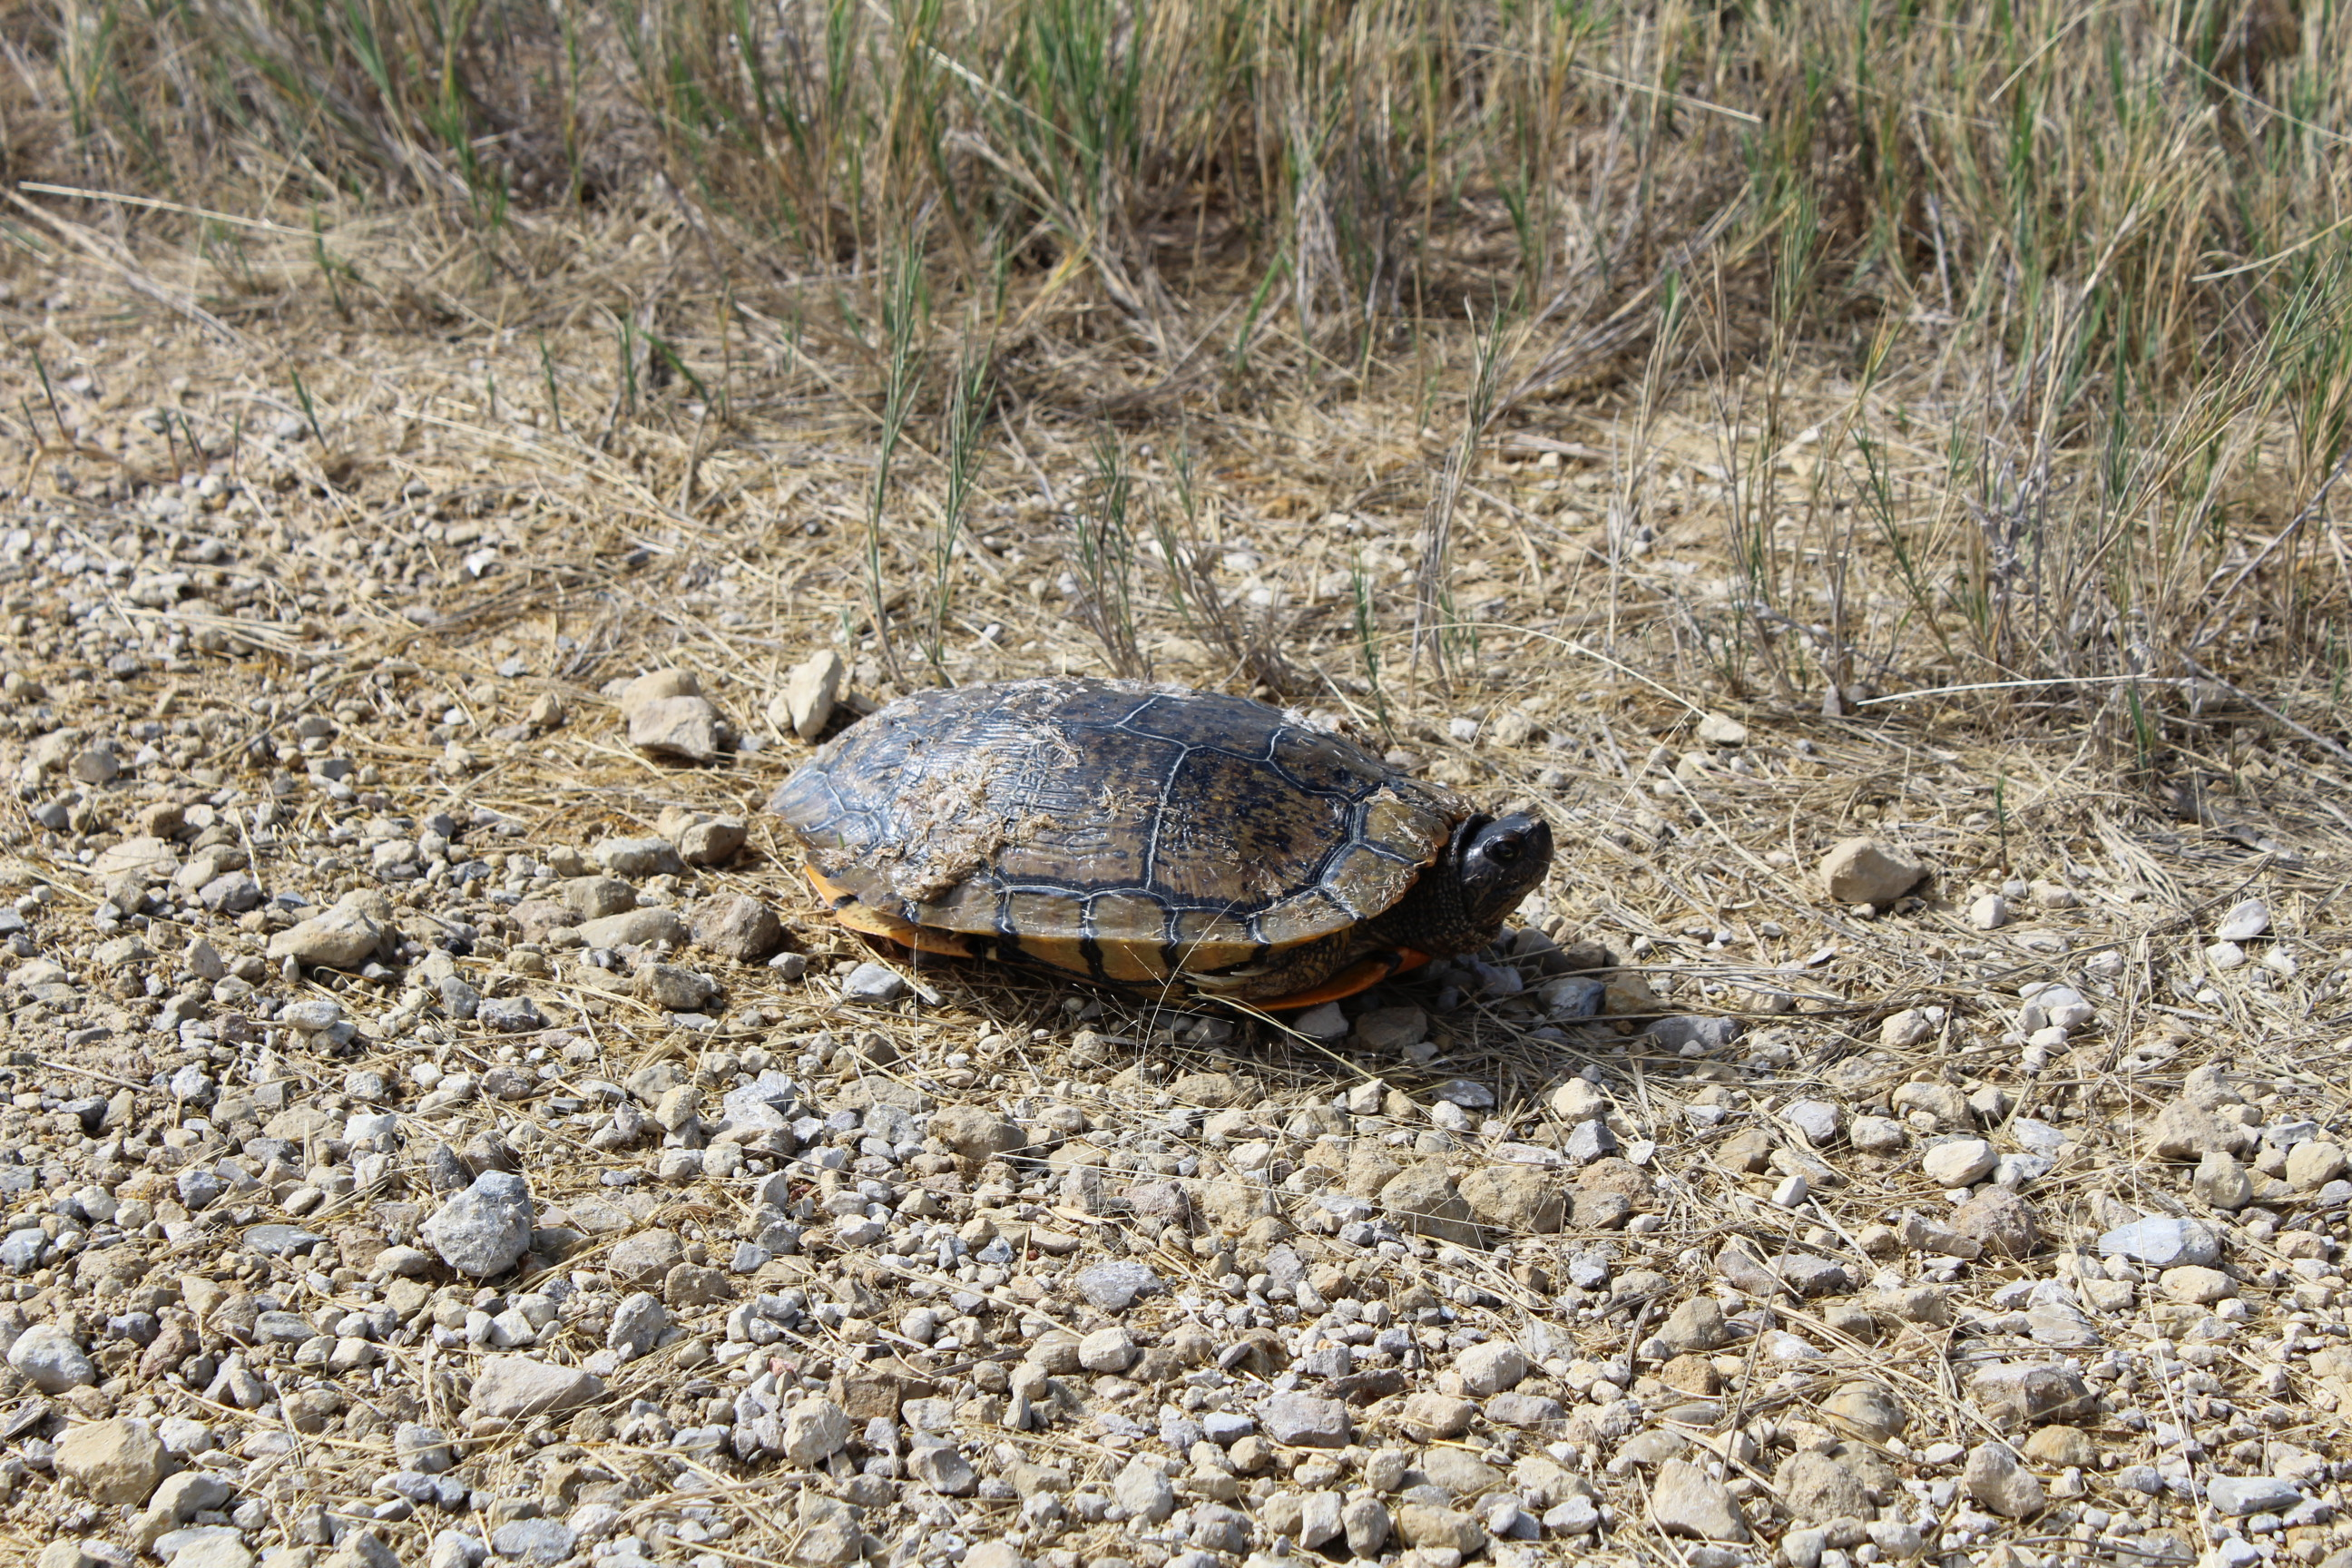 Quivira National Wildlife Refuge isn't just for the birds. It's also home to turtles like this one. (Photo by J. Schafer)